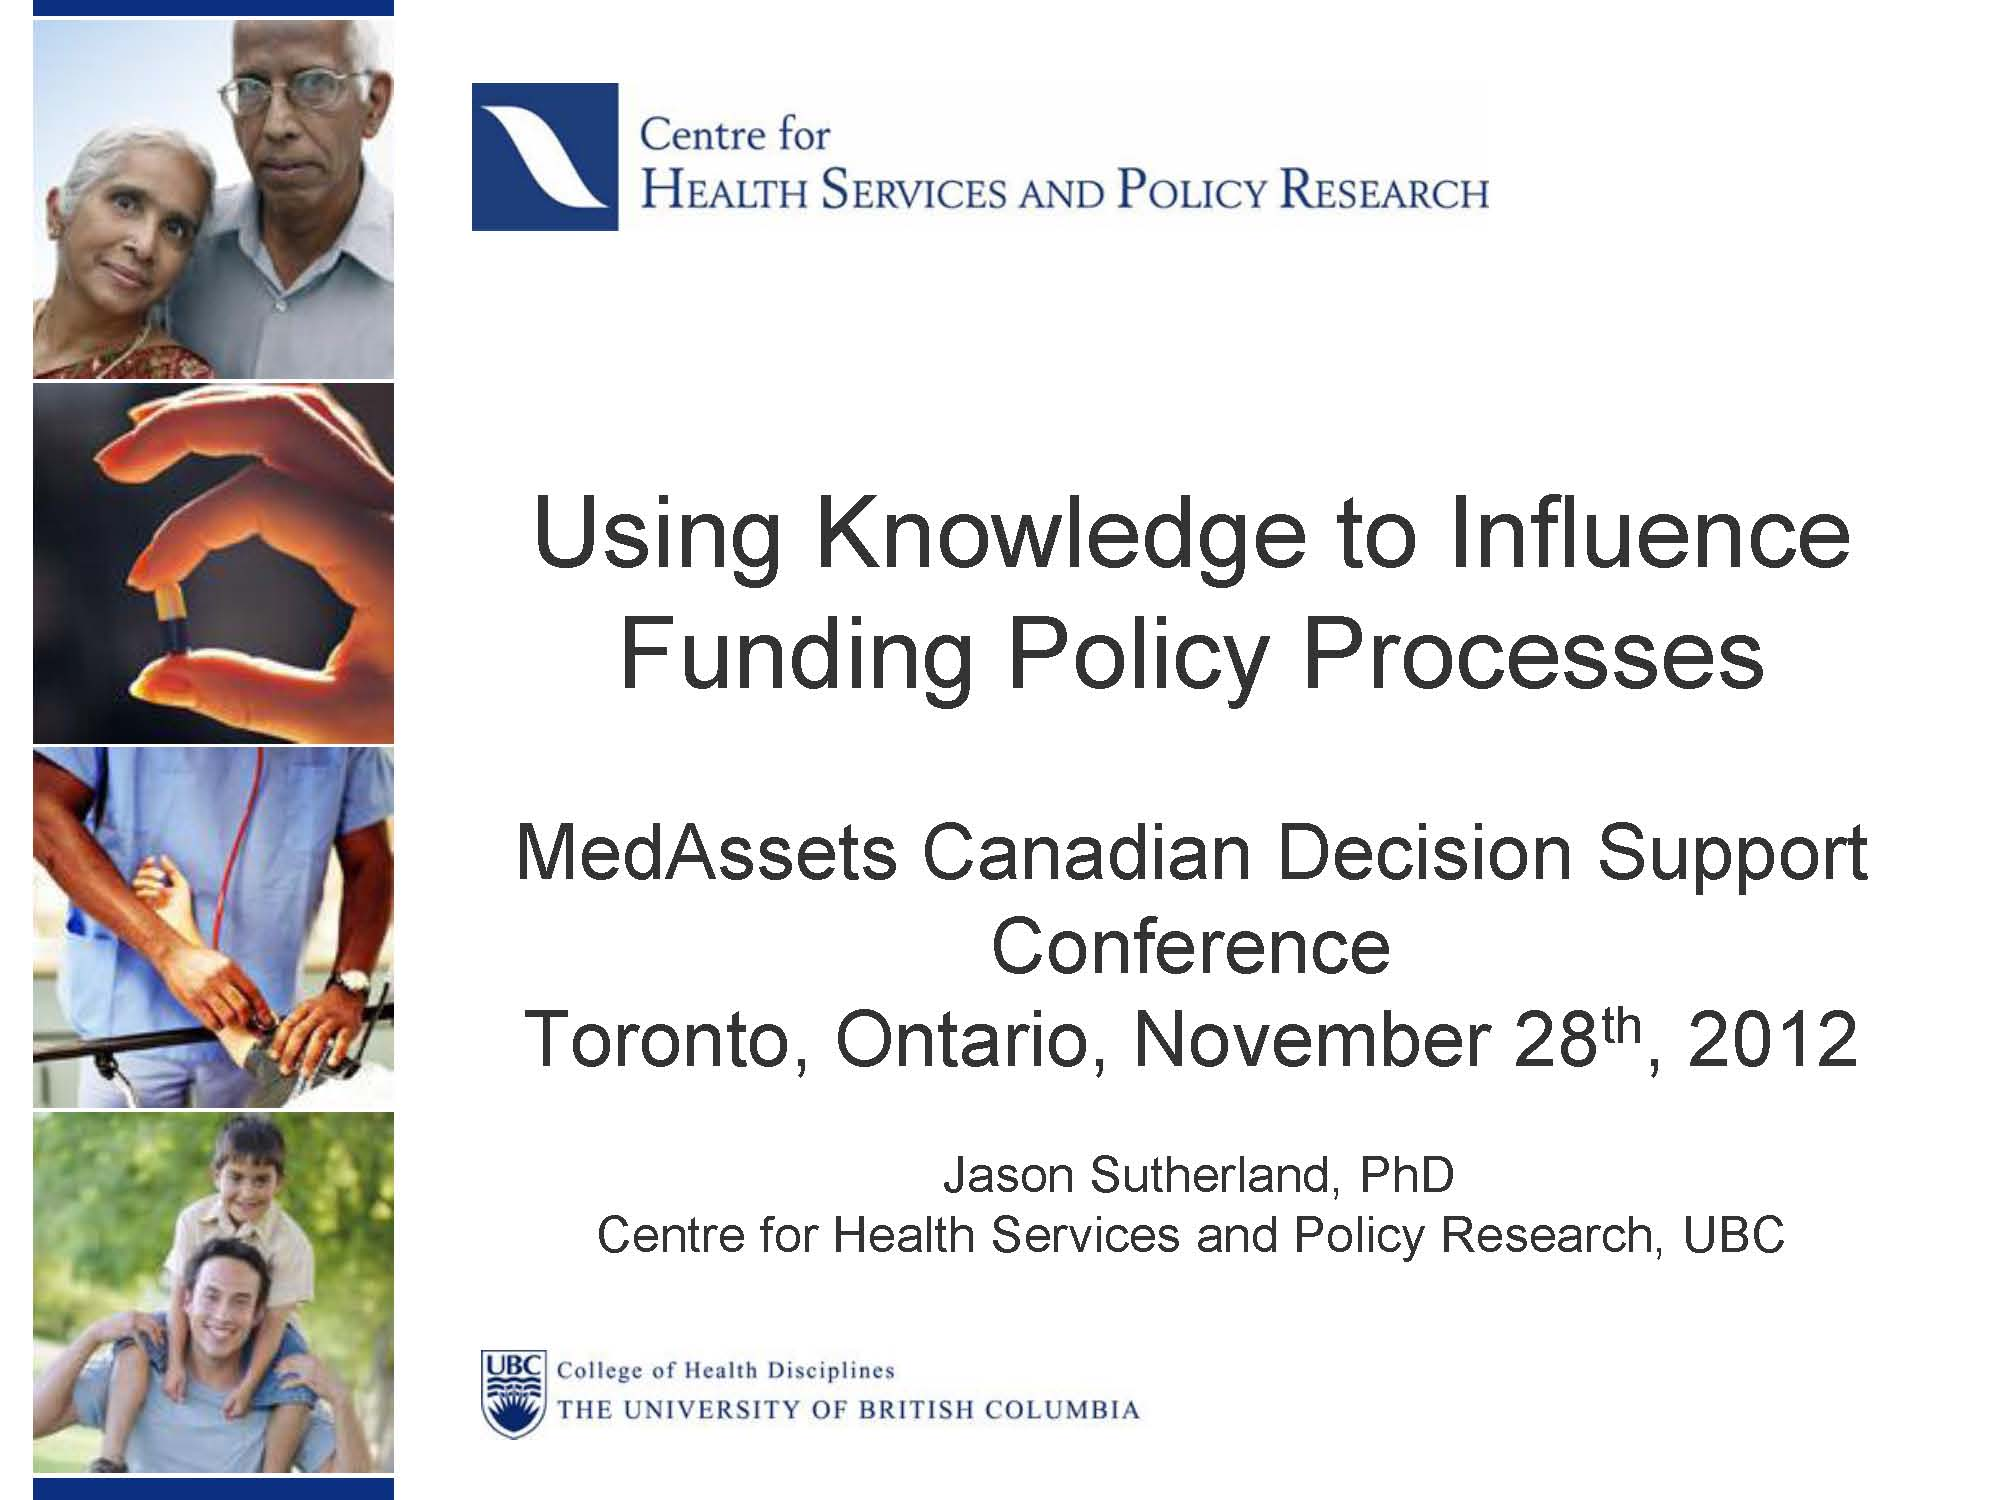 Using Knowledge to Influence Funding Policy Processes Page 01